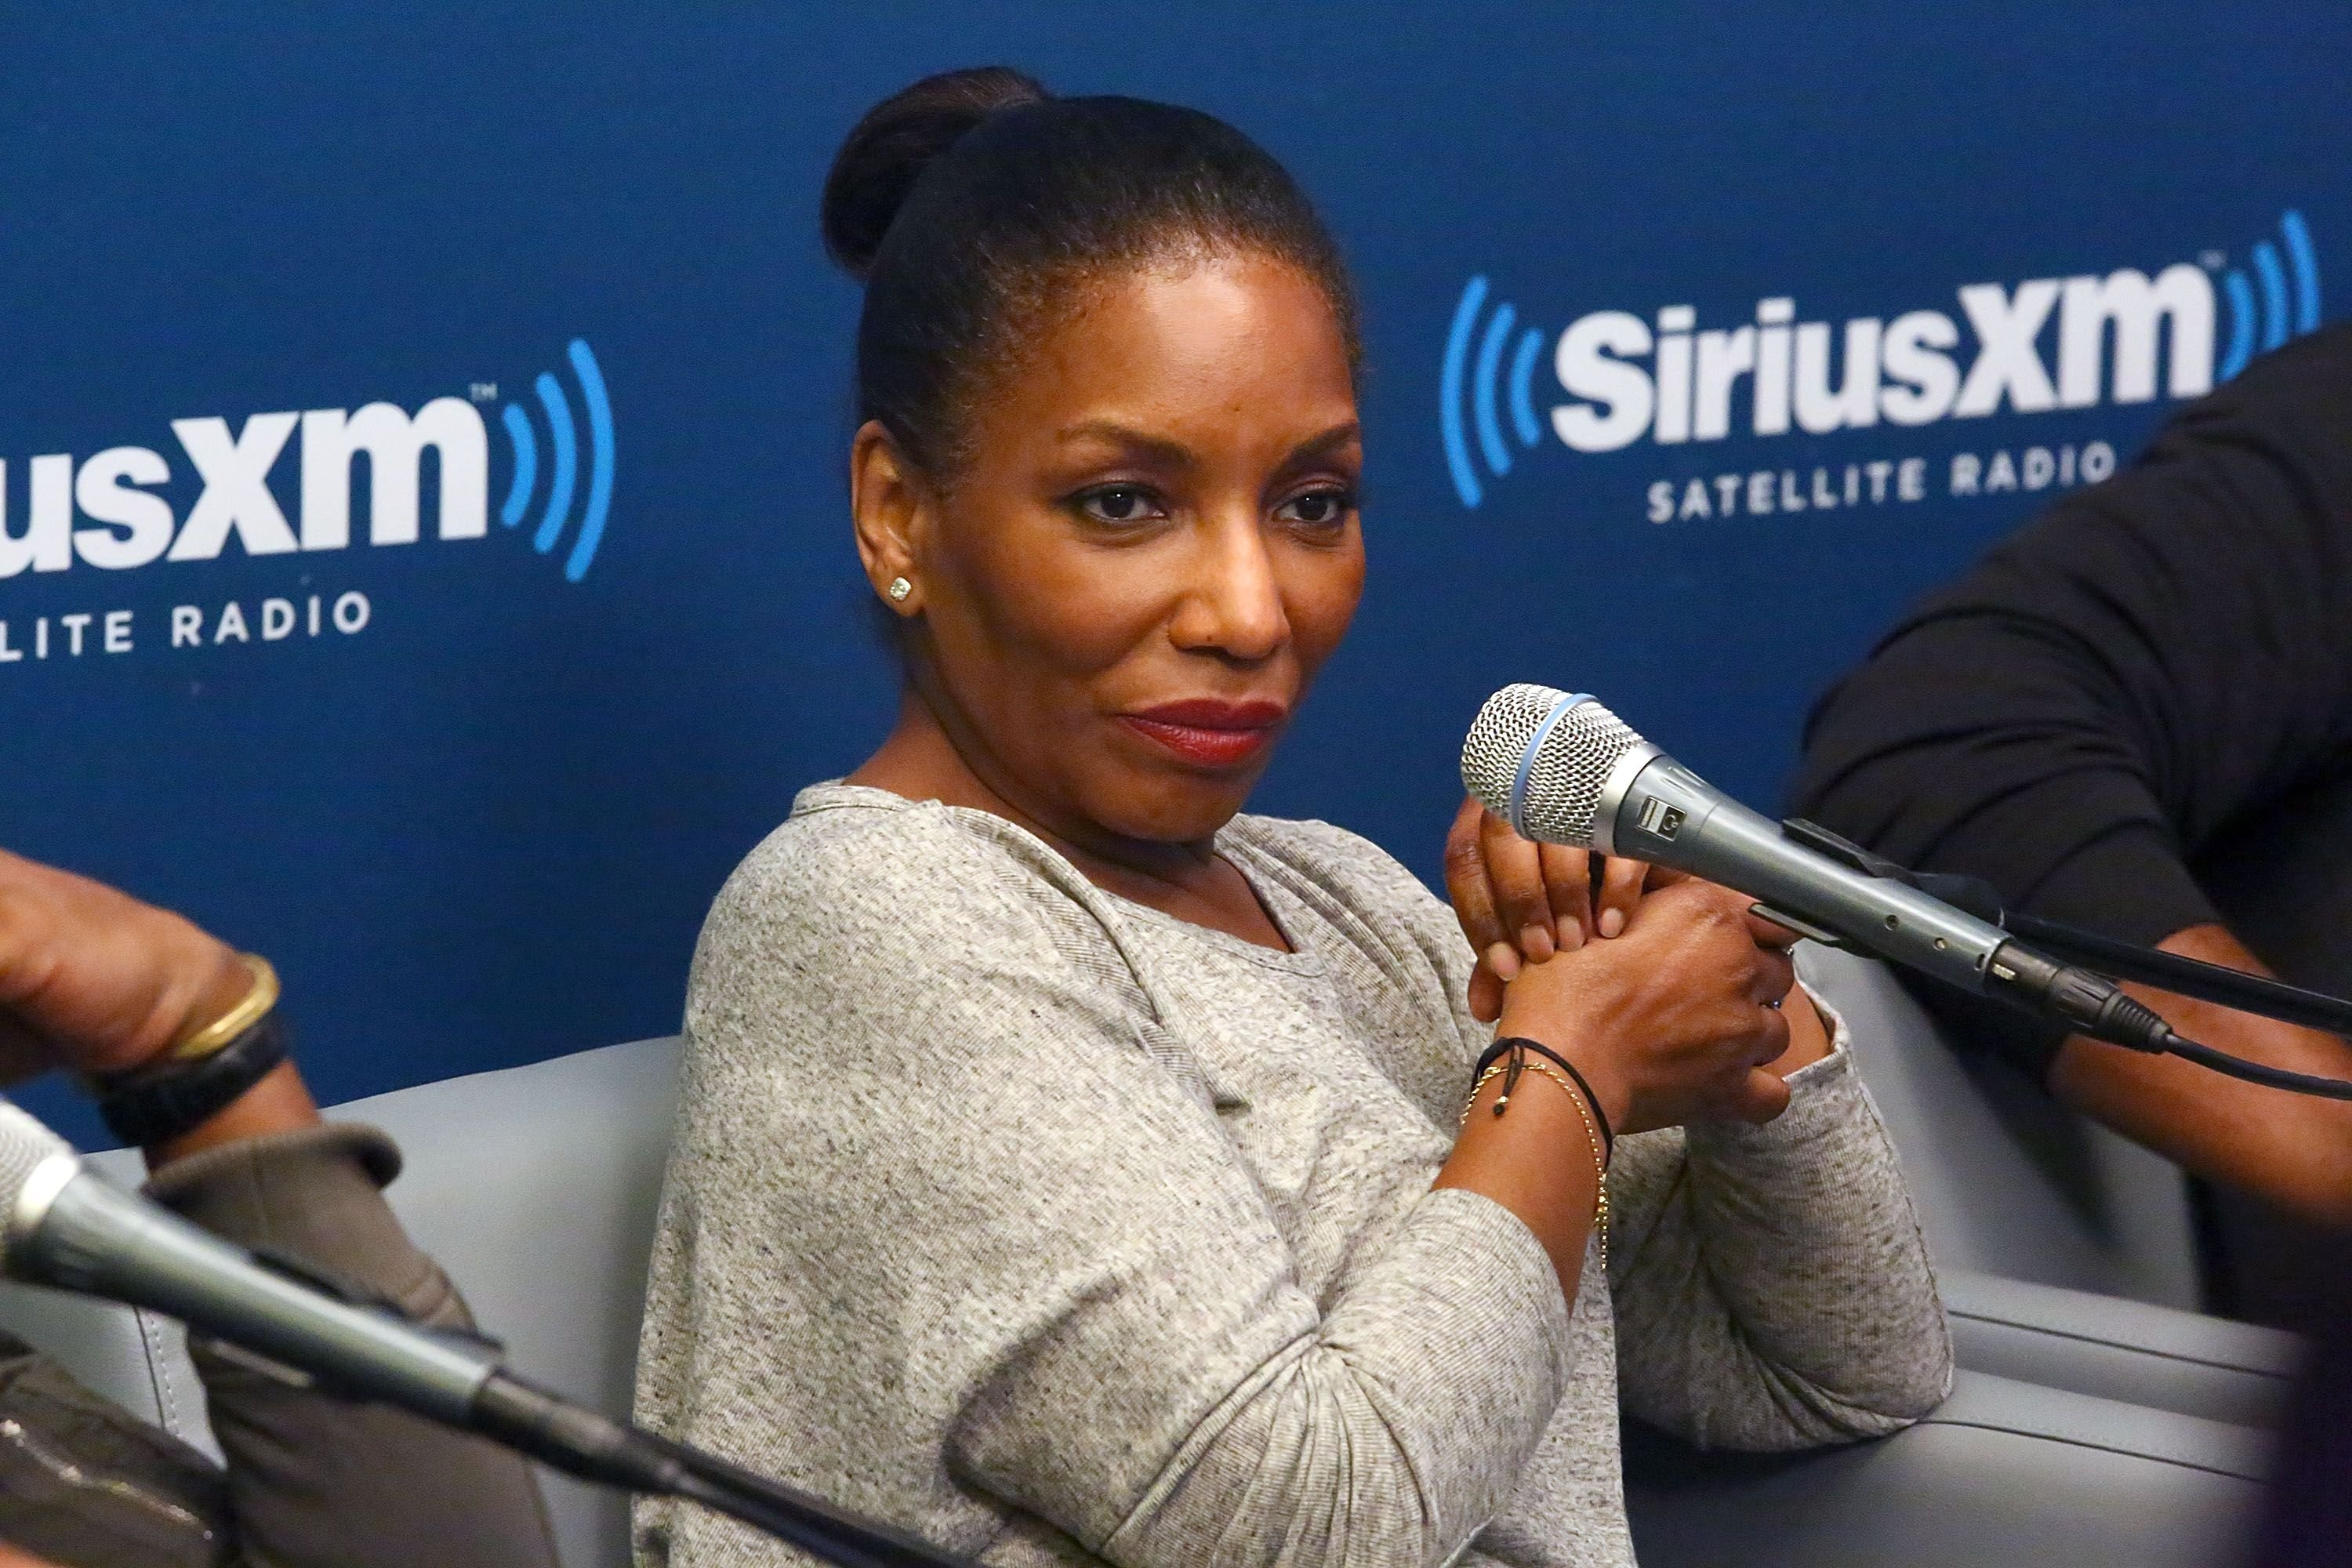 Stephanie Mills attends SiriusXM's Town Hall with the cast of 'The Wiz' hosted by Radio Andy host Bevy Smith at the SiriusXM Studios on October 26, 2015 in New York City.   Source: Getty Images